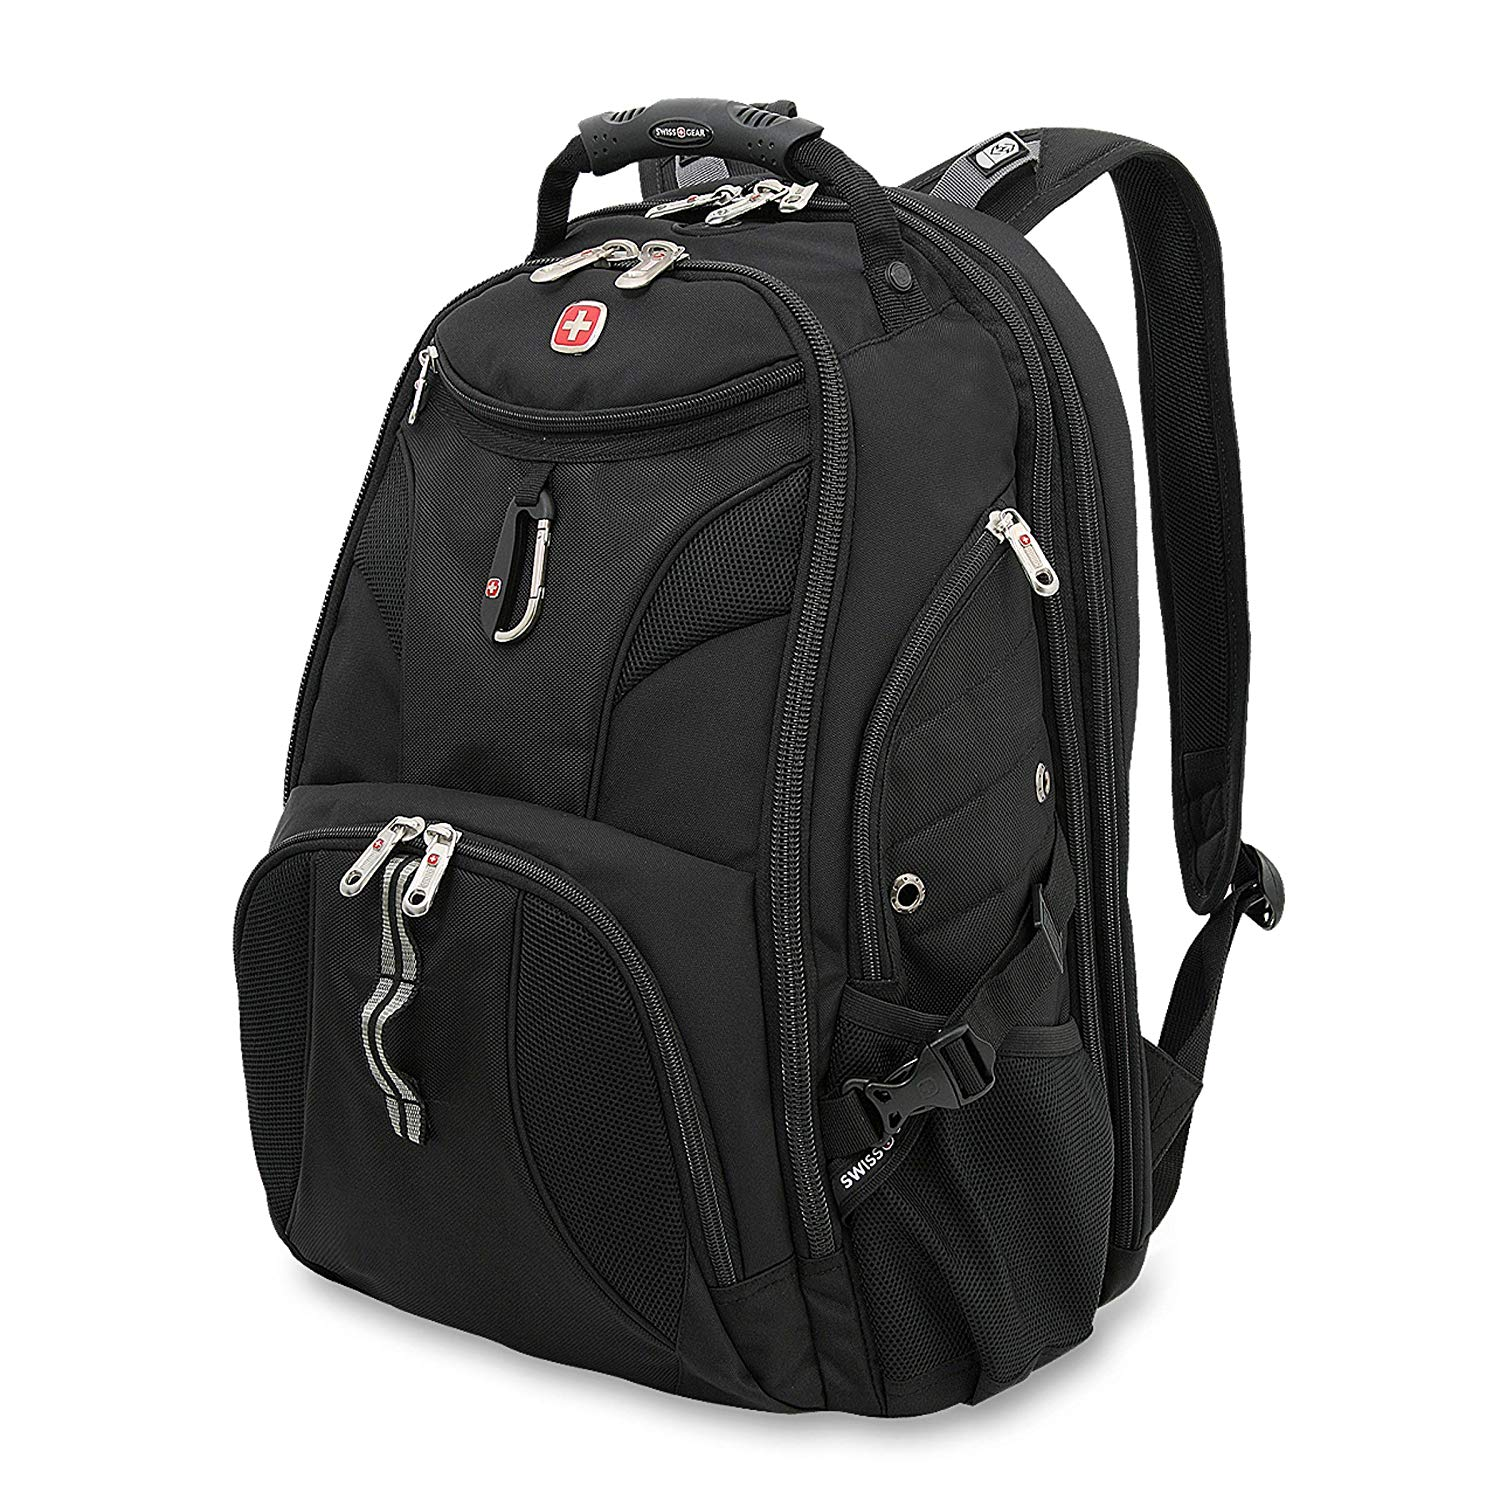 SwissGear 1900 Scansmart Backpack